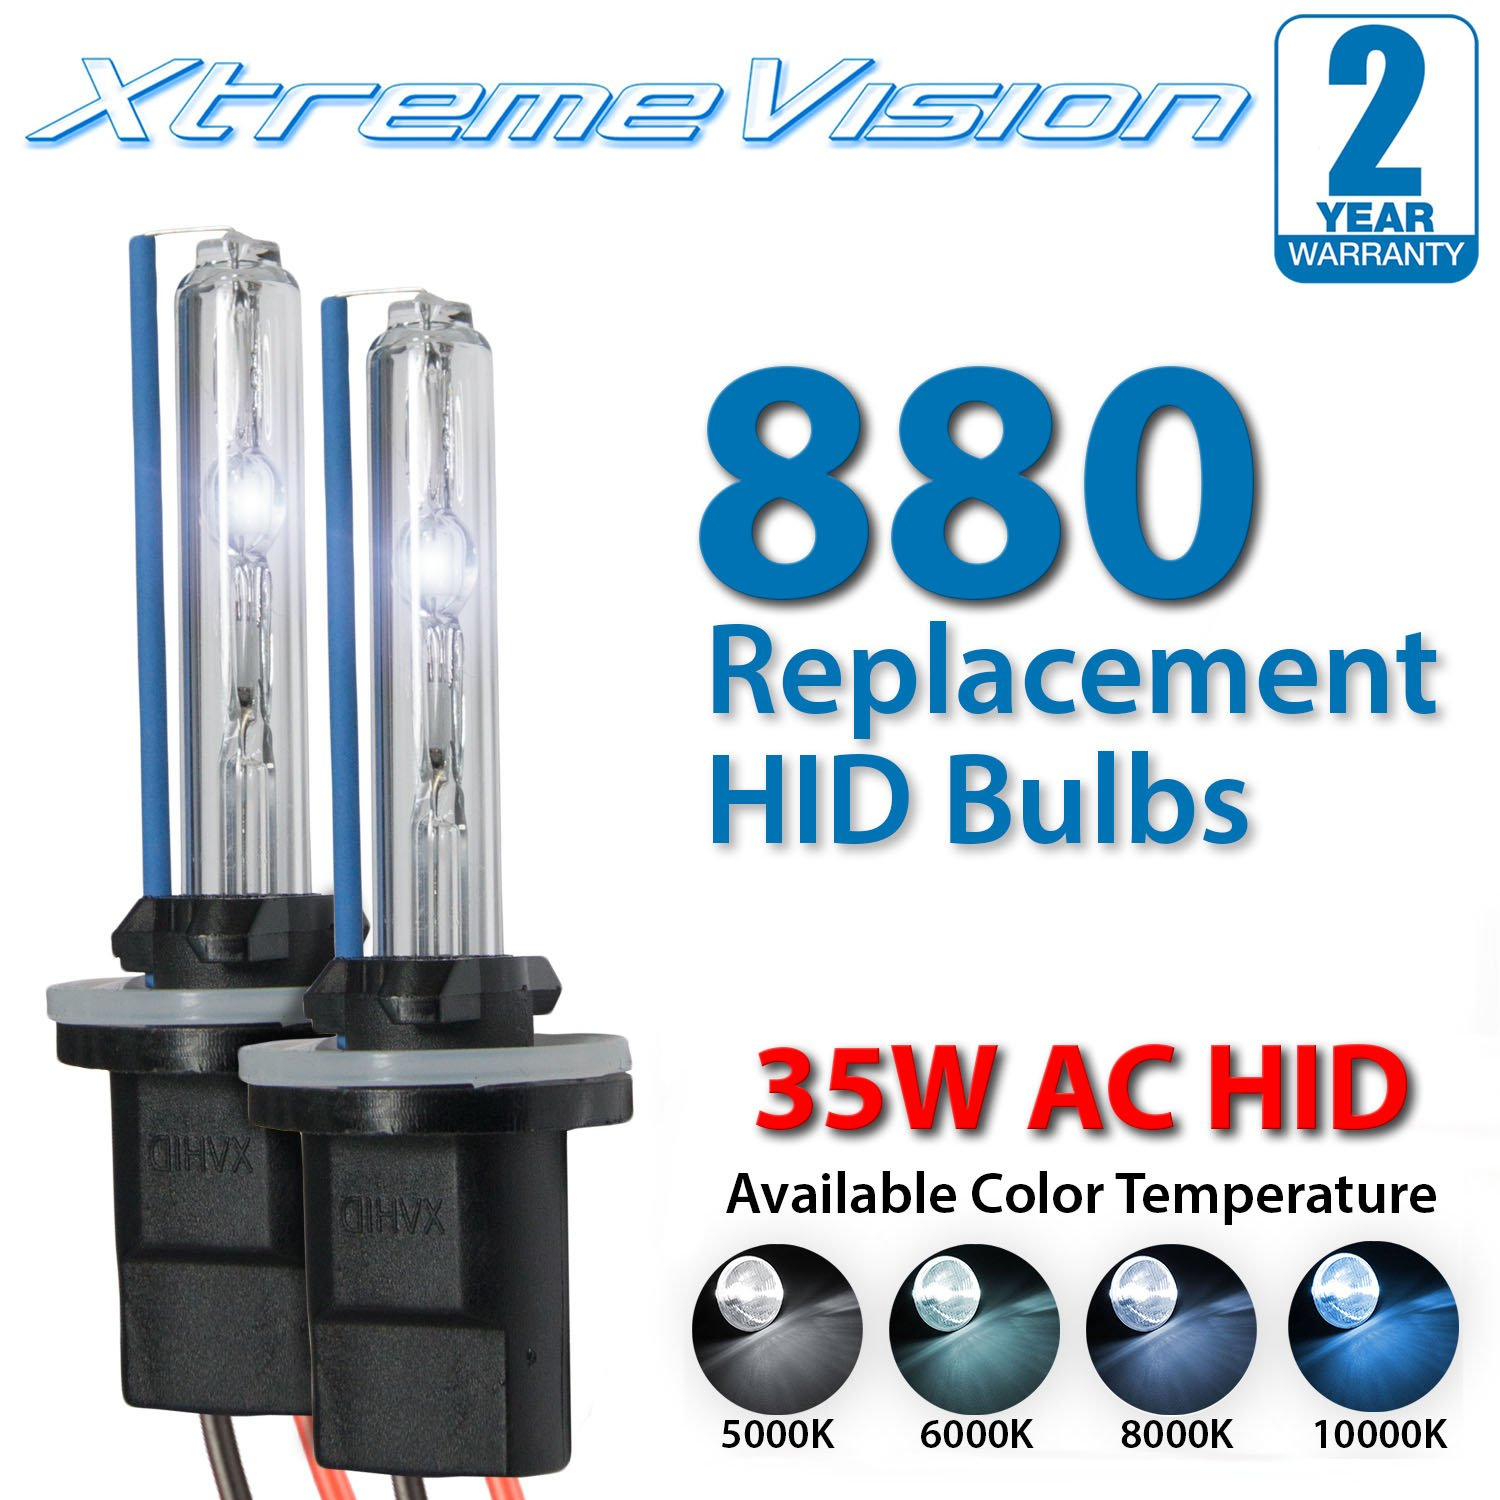 2 Year Warranty H4-3 9003-6000K Bi xenon HI//LO Innovited 35W AC Xenon HID LightsAll Bulb Sizes and Colors with Slim Ballast Diamond White